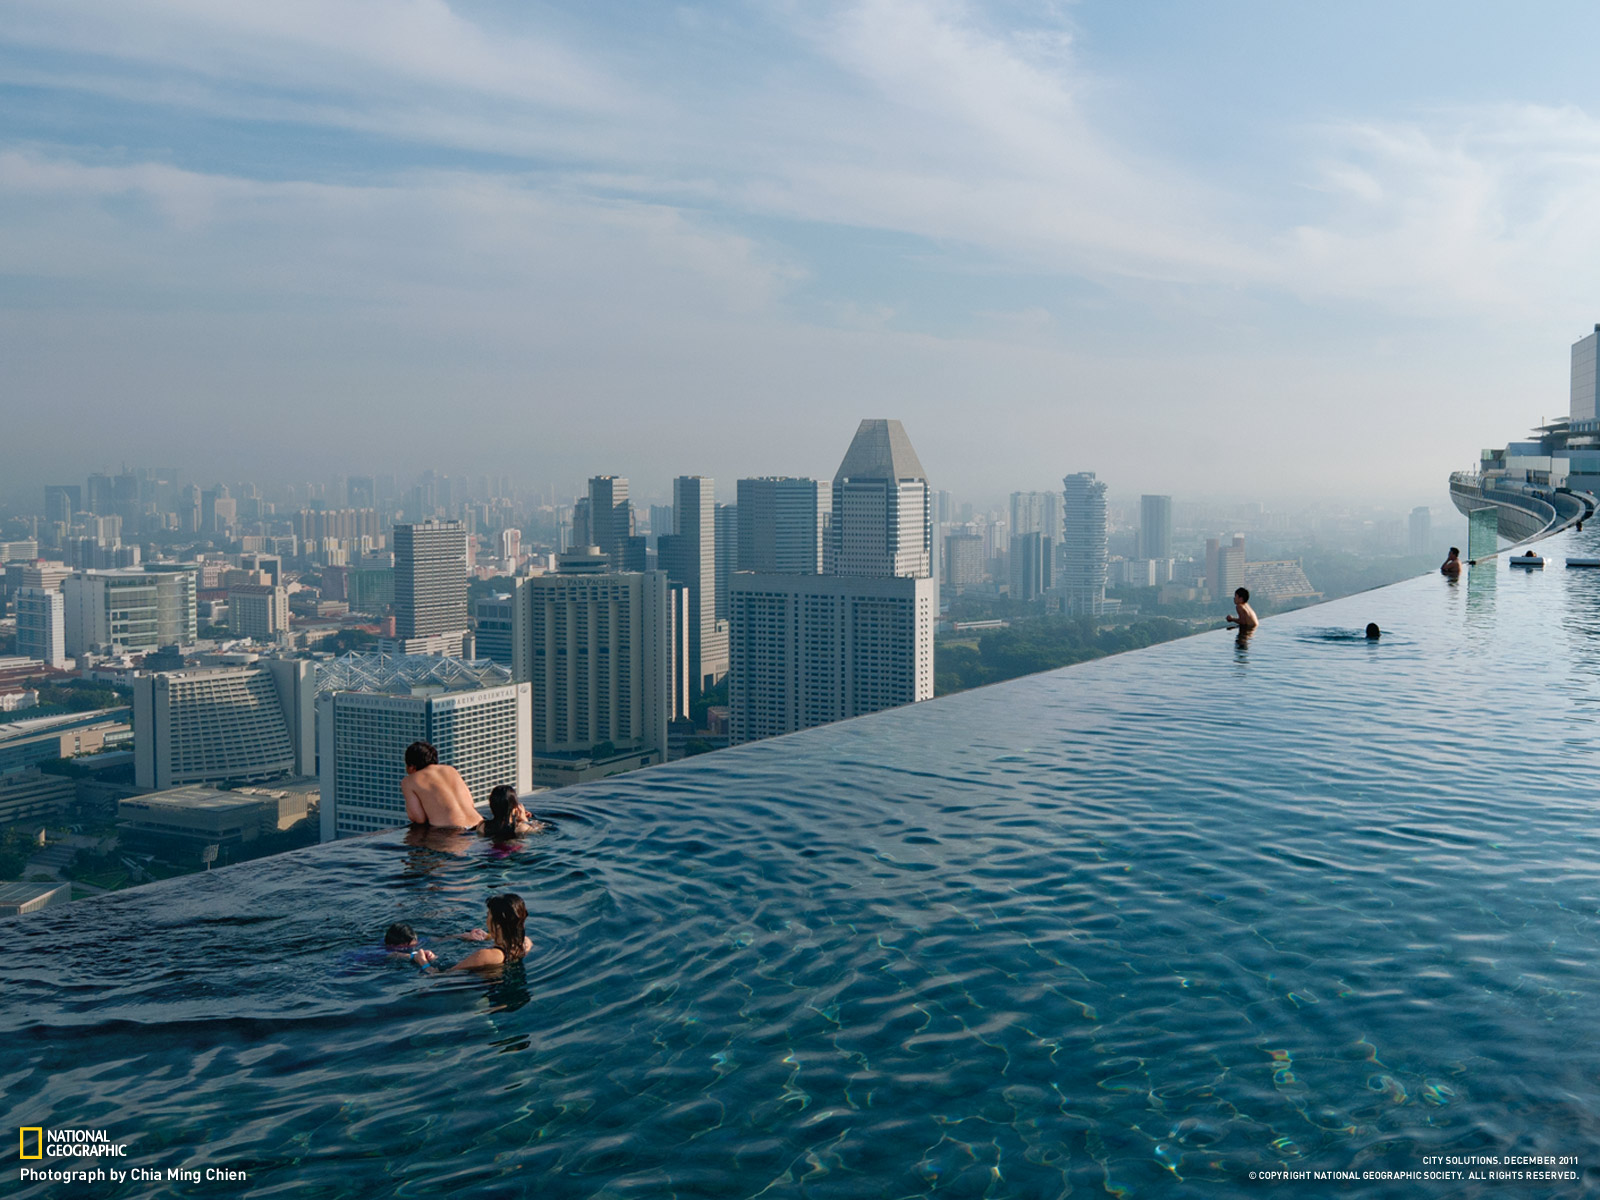 The great marina bay of sands hotel singapore casino hotel myclipta - Marina bay sands resort singapore swimming pool ...